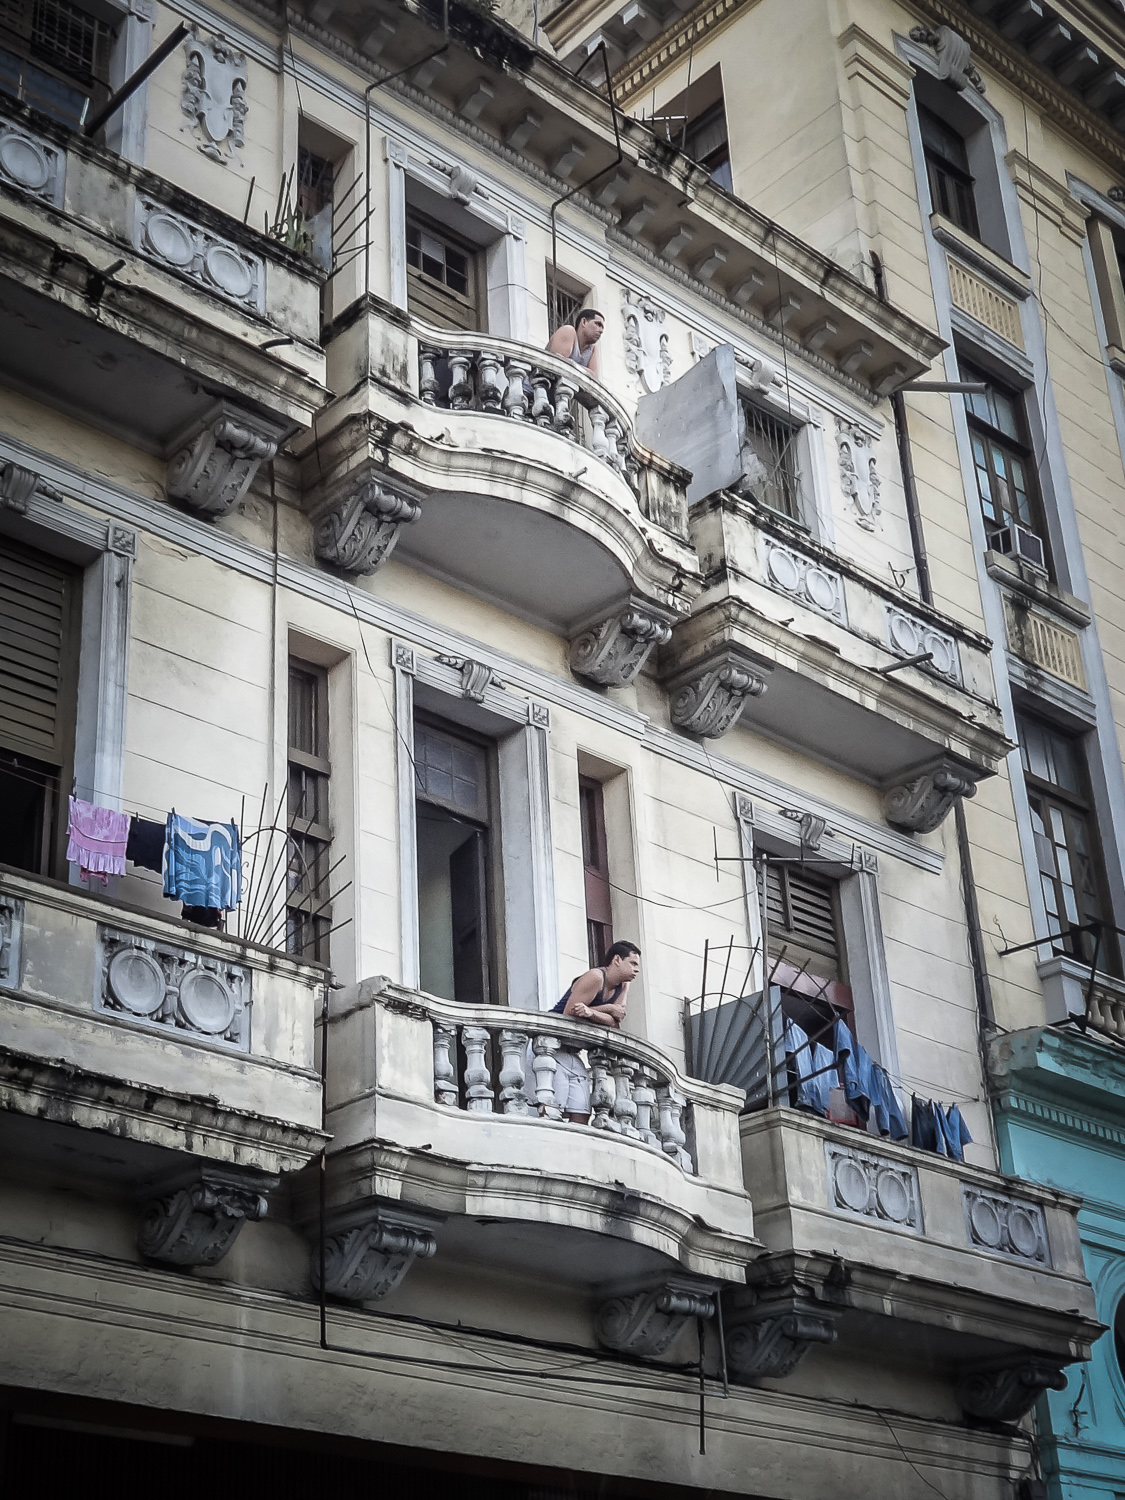 Two Men, Two Balconies